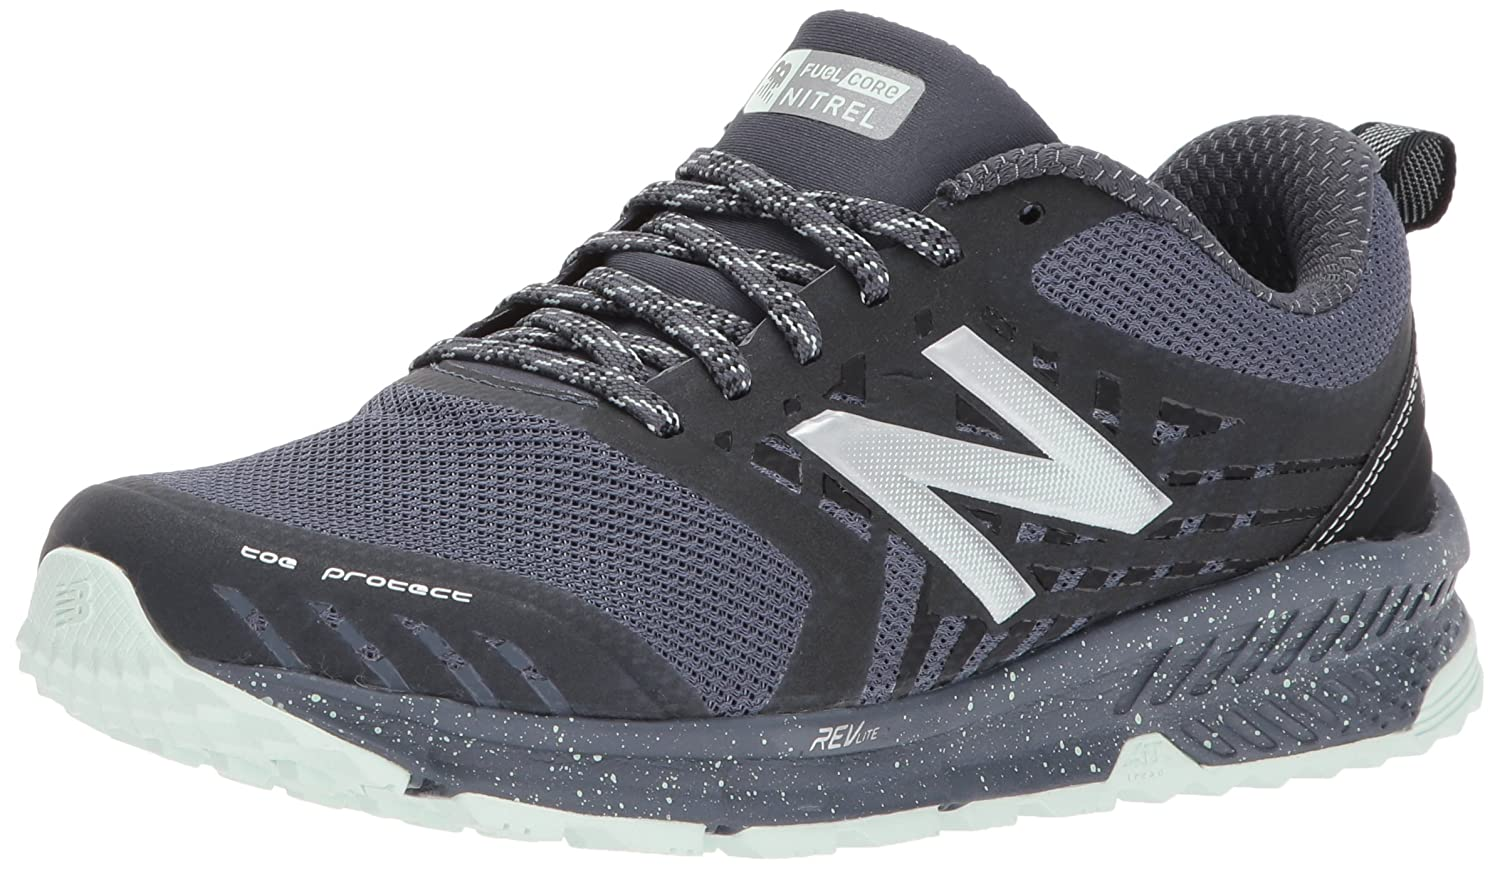 New Balance Women's Nitrel v1 FuelCore Trail Running Shoe B01NCPUPOK 6.5 B(M) US|Grey/Black